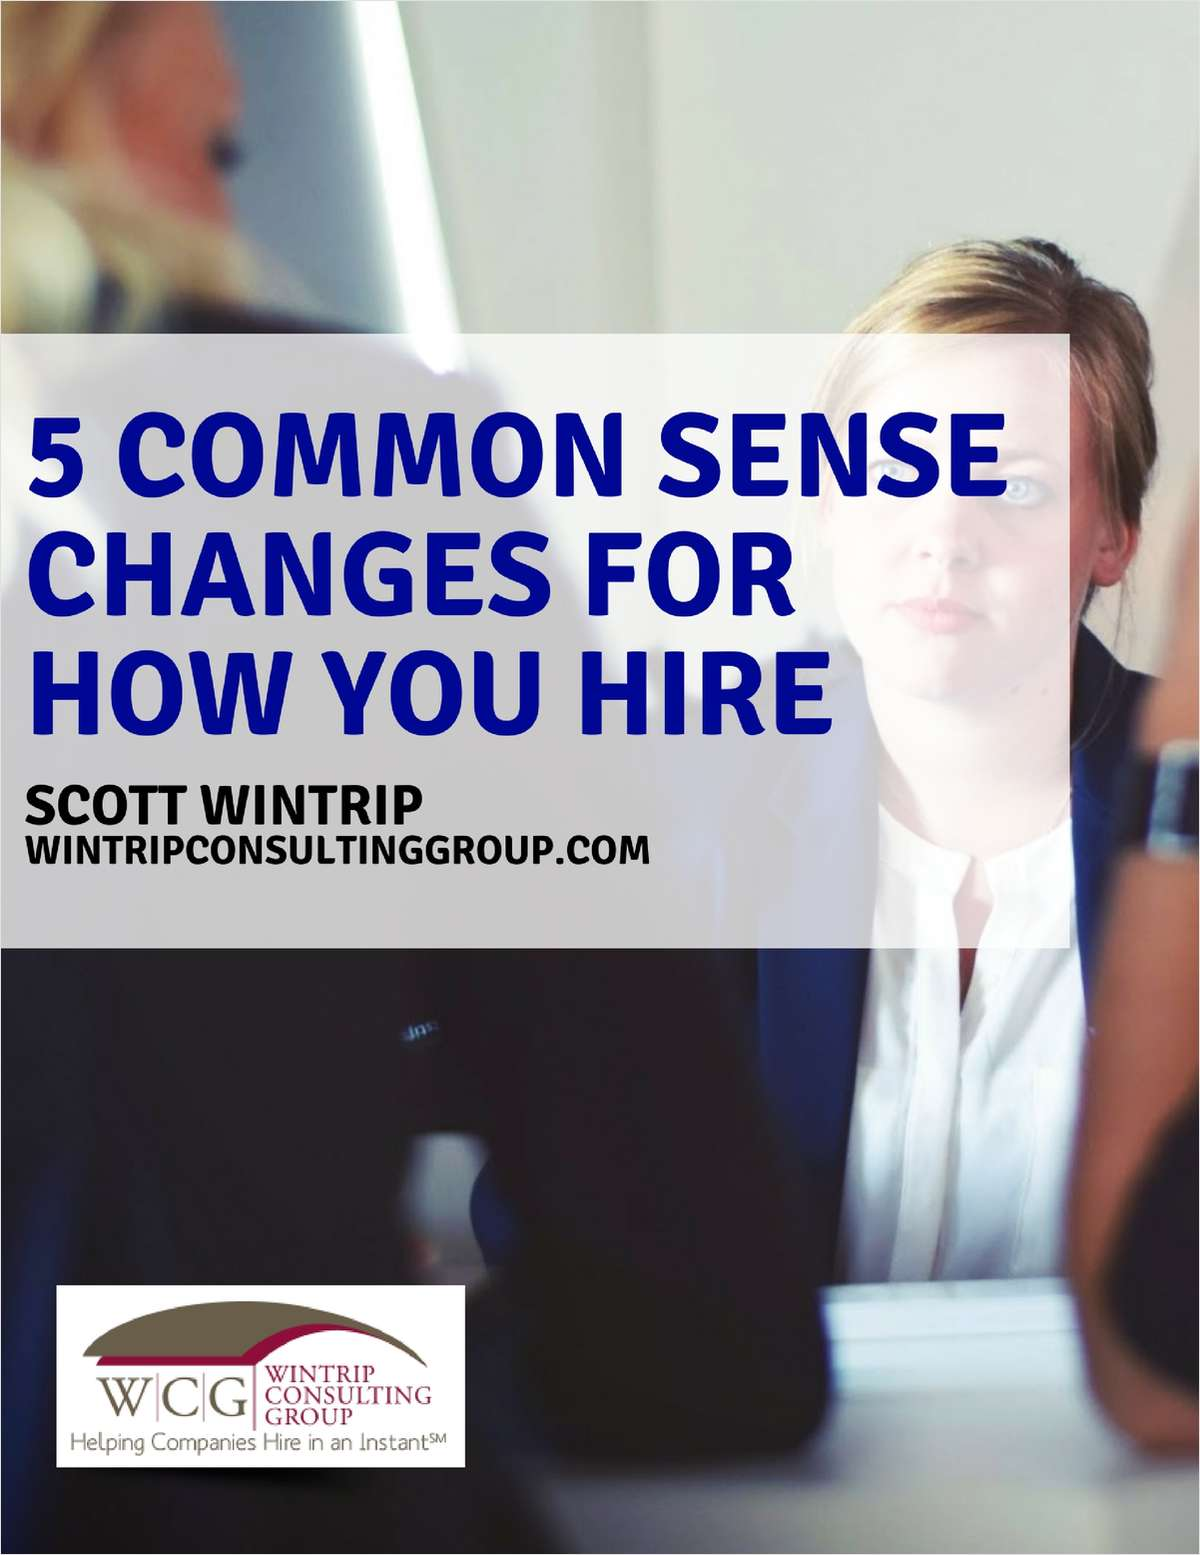 5 Common Sense Changes for How You Hire